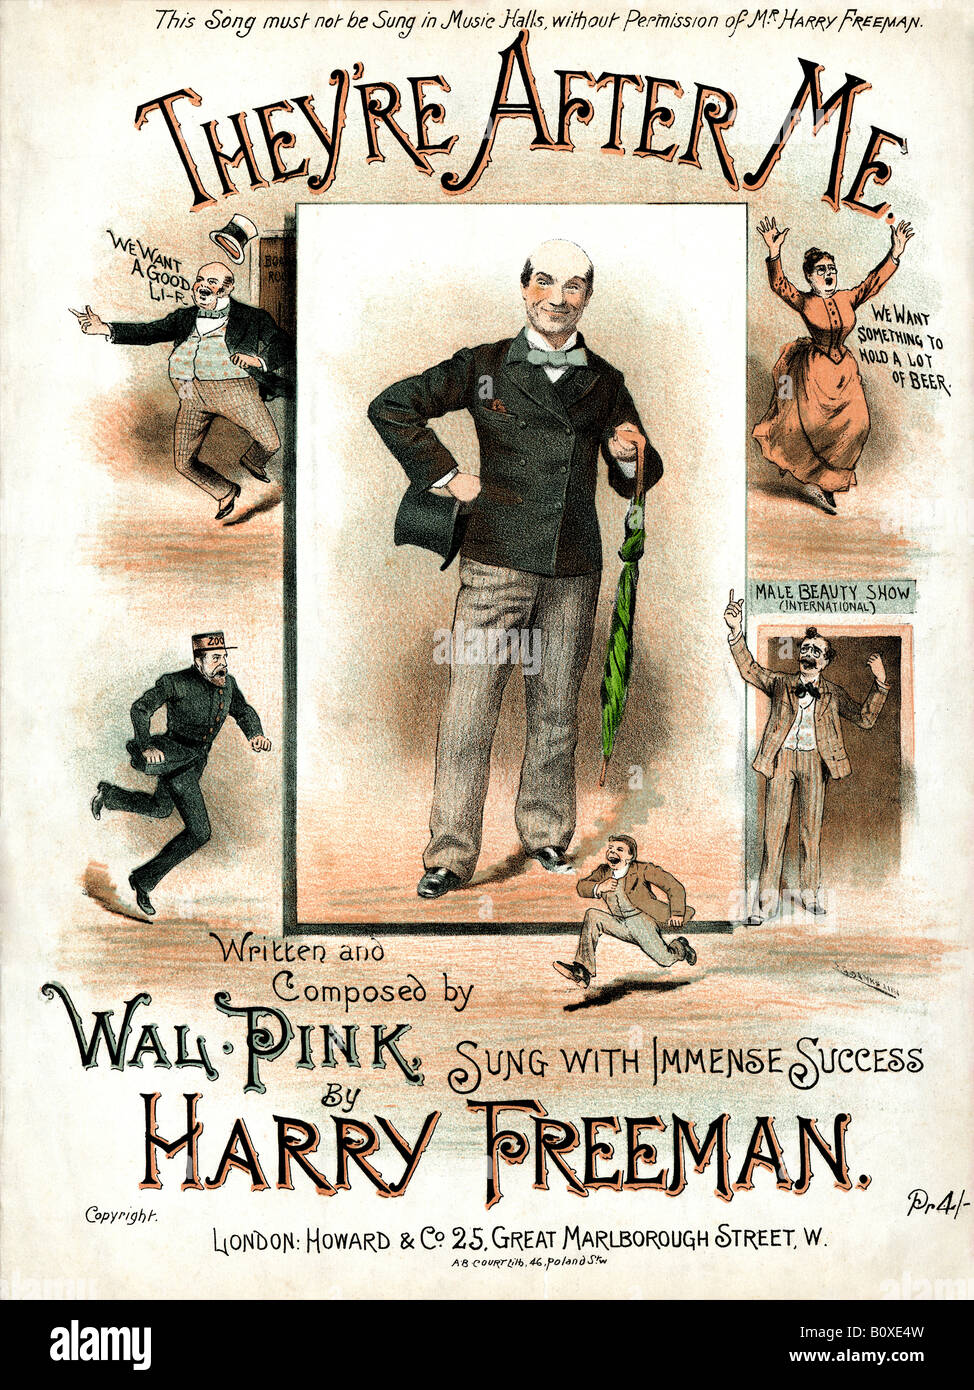 Theyre After Me Victorian music sheet cover for a comic song sung by a paranoid Harry Freeman - Stock Image